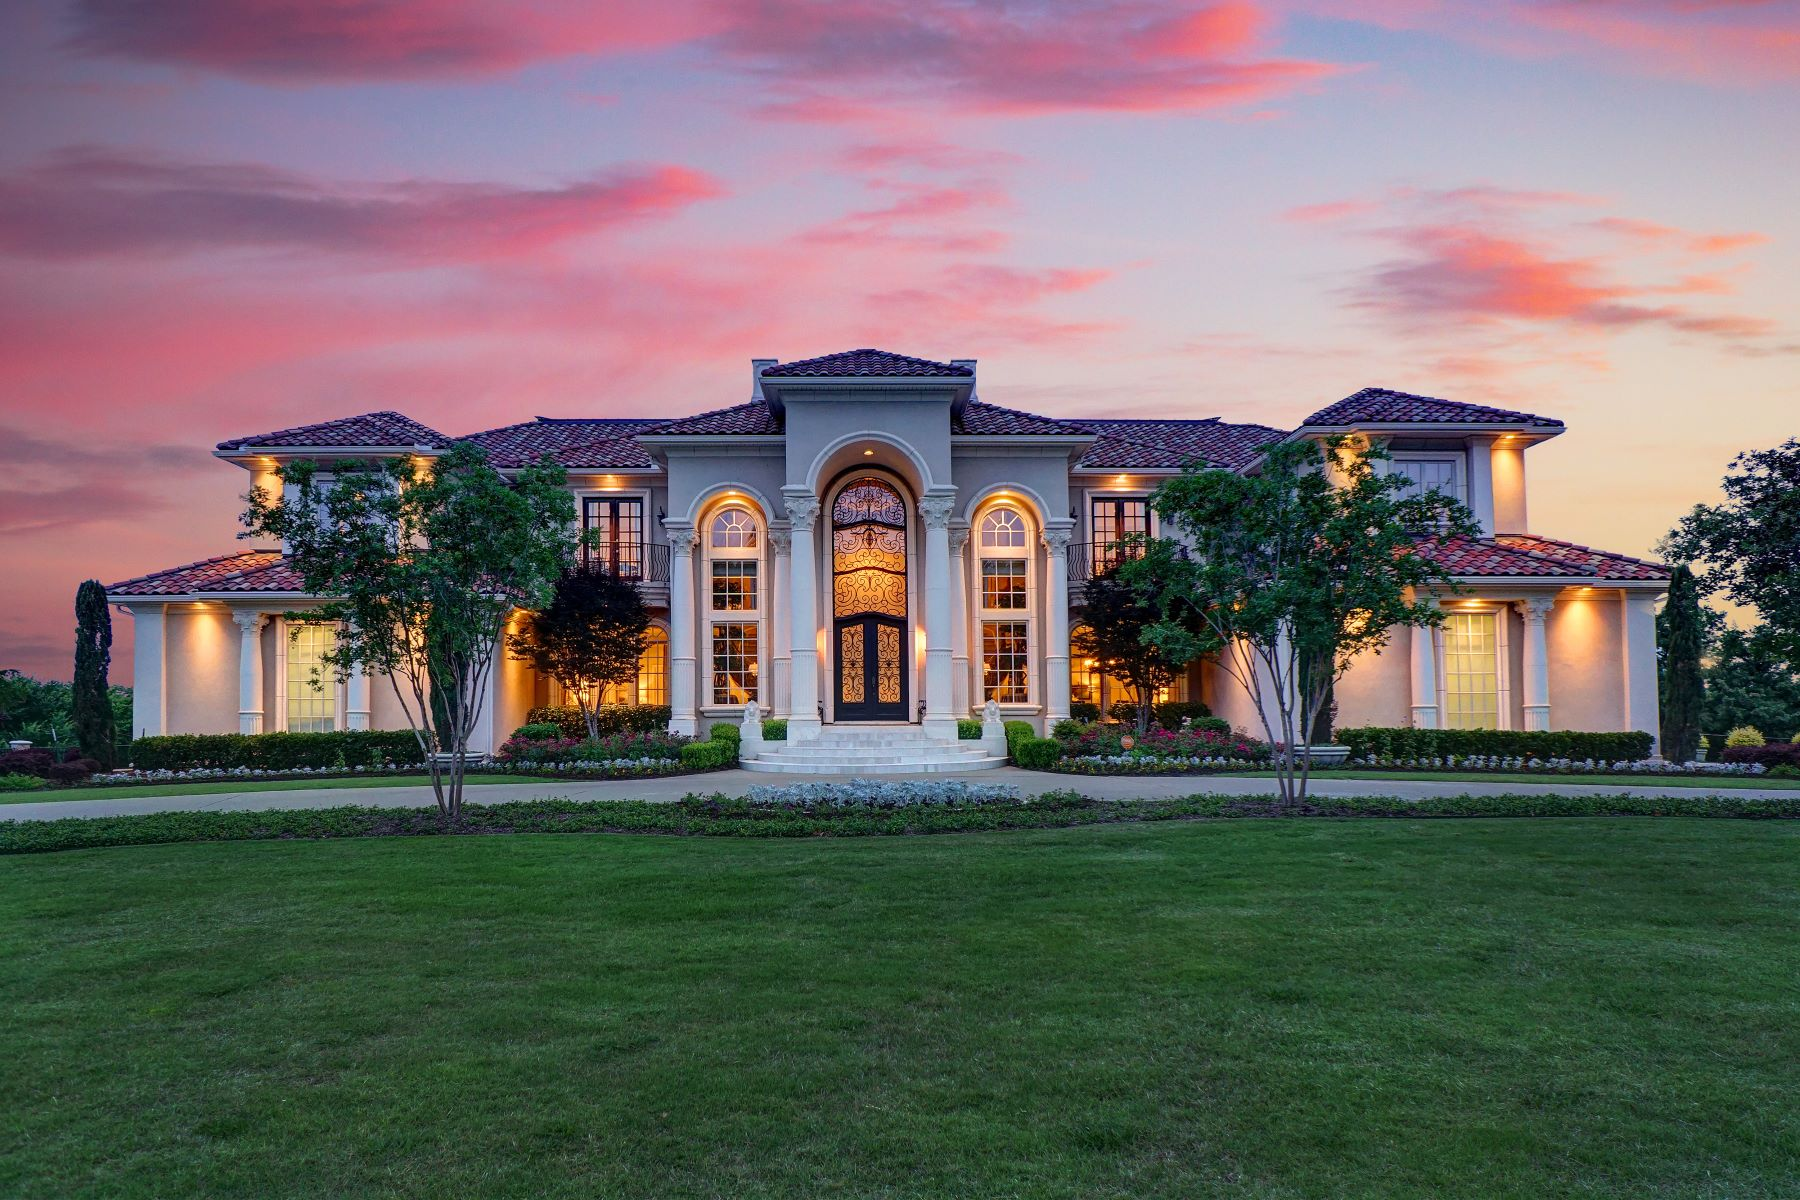 Single Family Homes for Sale at Mediterranean Masterpiece is one of the finest estate homes in Dallas-Fort Worth 2324 Panorama Court Arlington, Texas 76016 United States